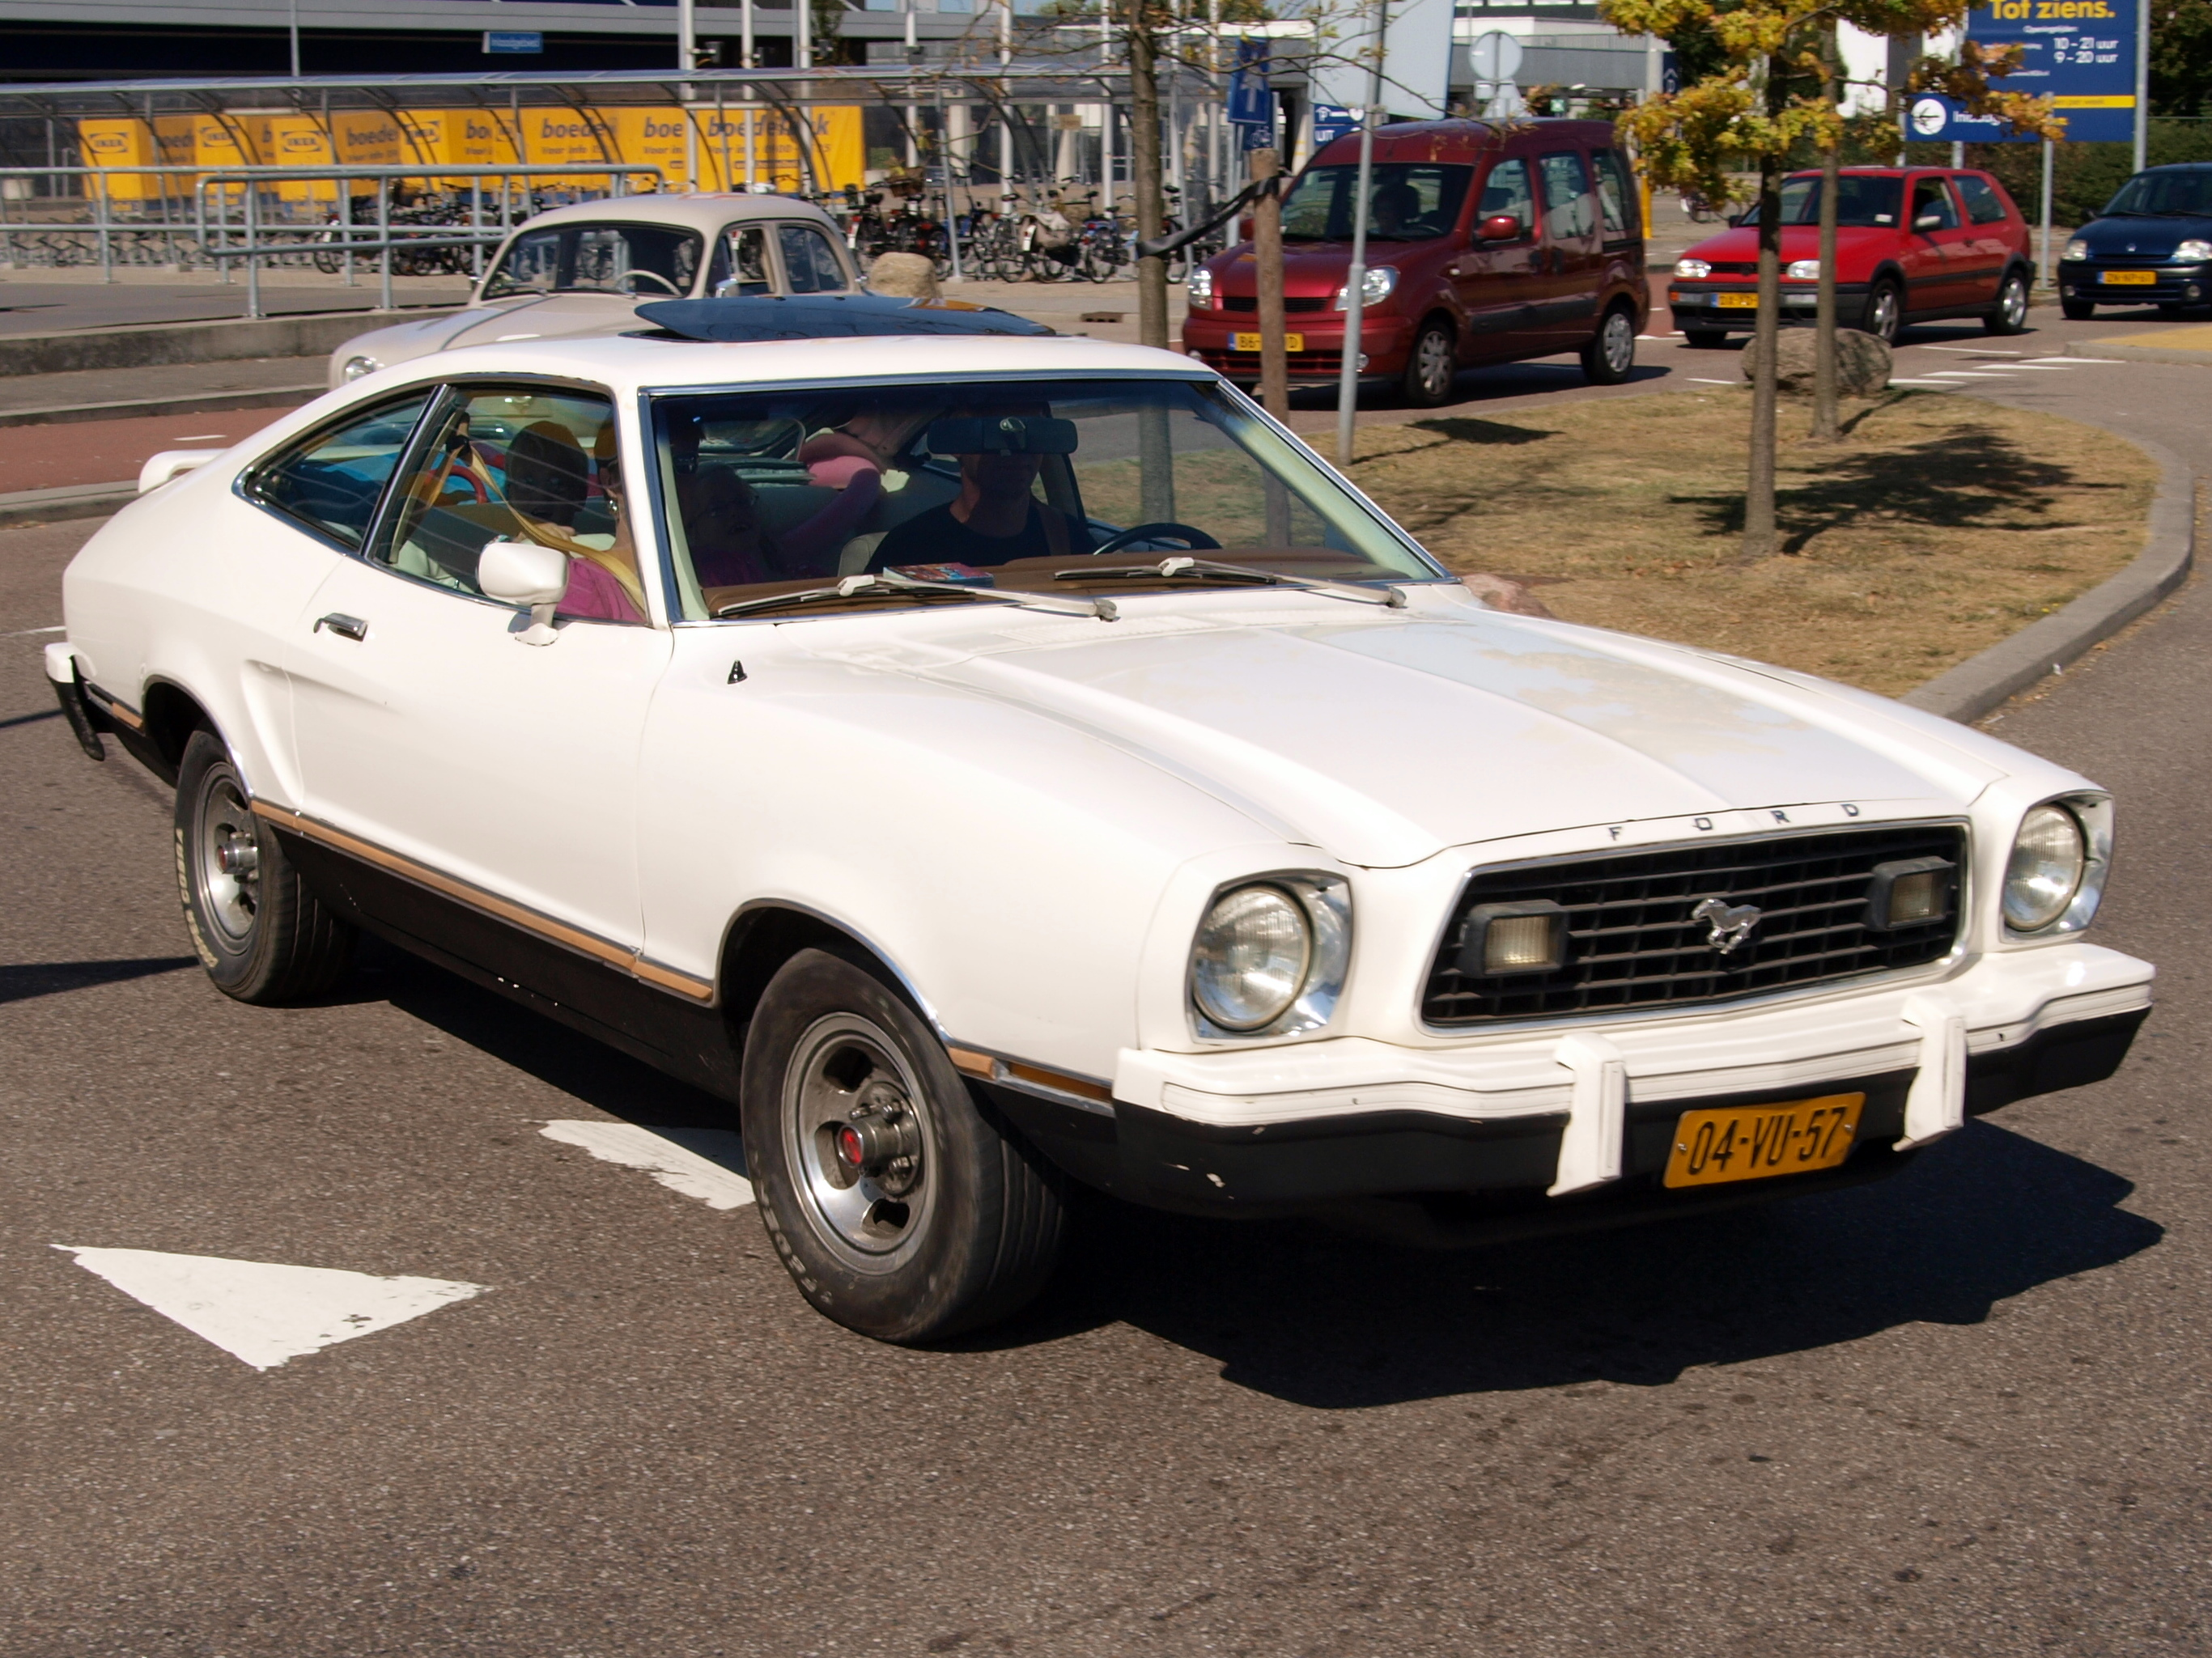 Fileford mustang ii 2 2 04 vu 57 pic2 jpg wikimedia commons